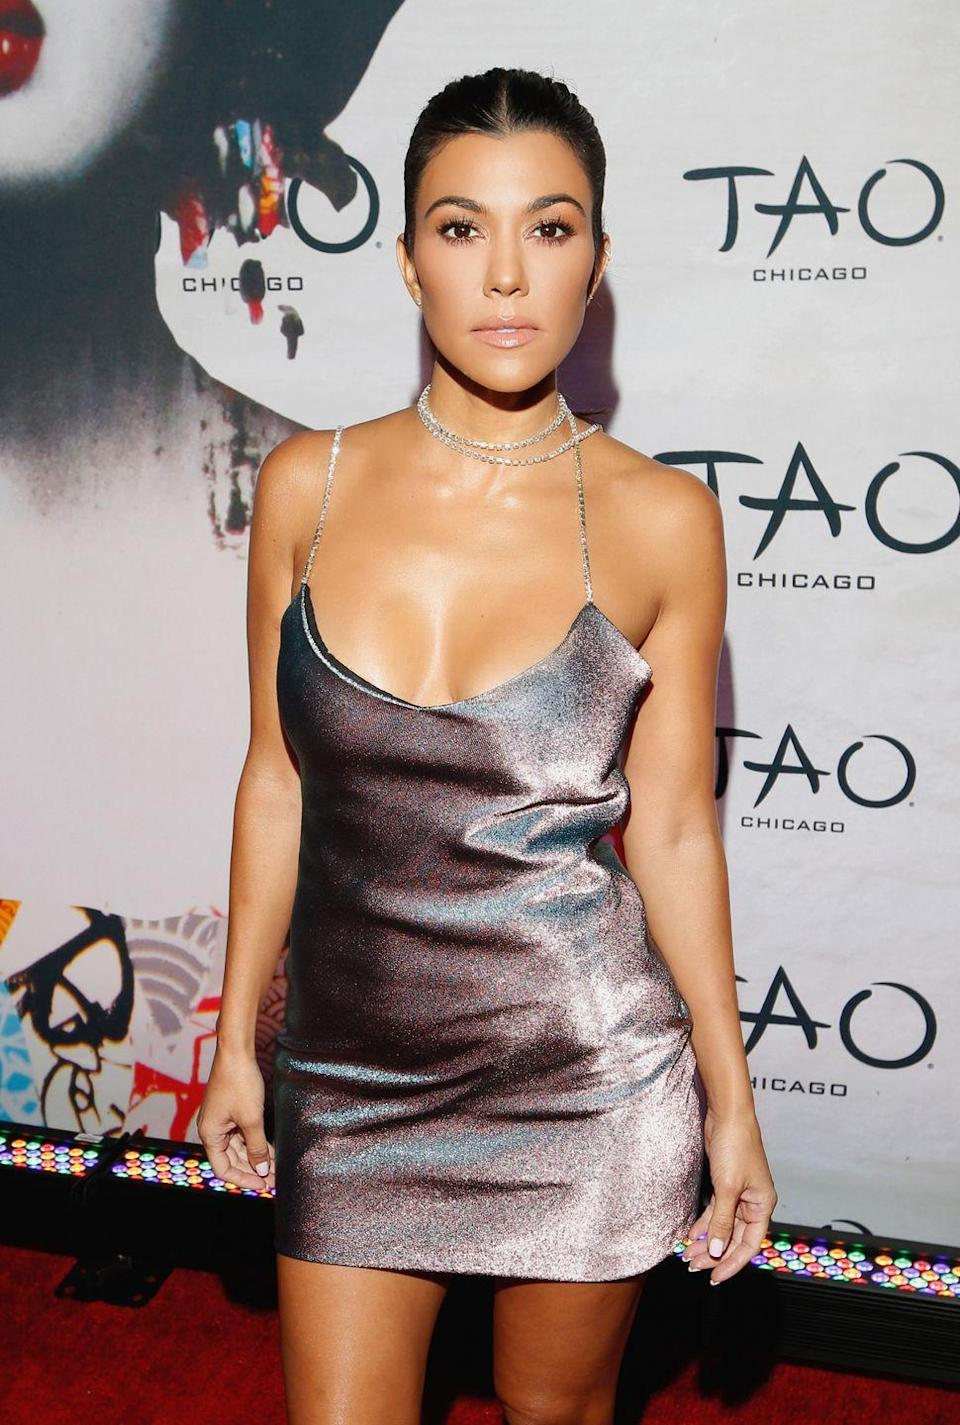 "<p>Kourtney Kardashian got breast implants when she was 22, but on an episode of <em>Keeping Up With The Kardashians</em>, she said she wished she hadn't. ""I had my boobs done but if I could go back, I wouldn't have done it. I was so cute before,"" <a href=""https://people.com/health/crystal-hefner-kourtney-kardashian-celebs-who-regret-getting-breast-implants/?slide=2345419#2345419"" rel=""nofollow noopener"" target=""_blank"" data-ylk=""slk:she said"" class=""link rapid-noclick-resp"">she said</a>. ""I've realized that I was made to look a certain way and I'm considering removing them.""</p>"